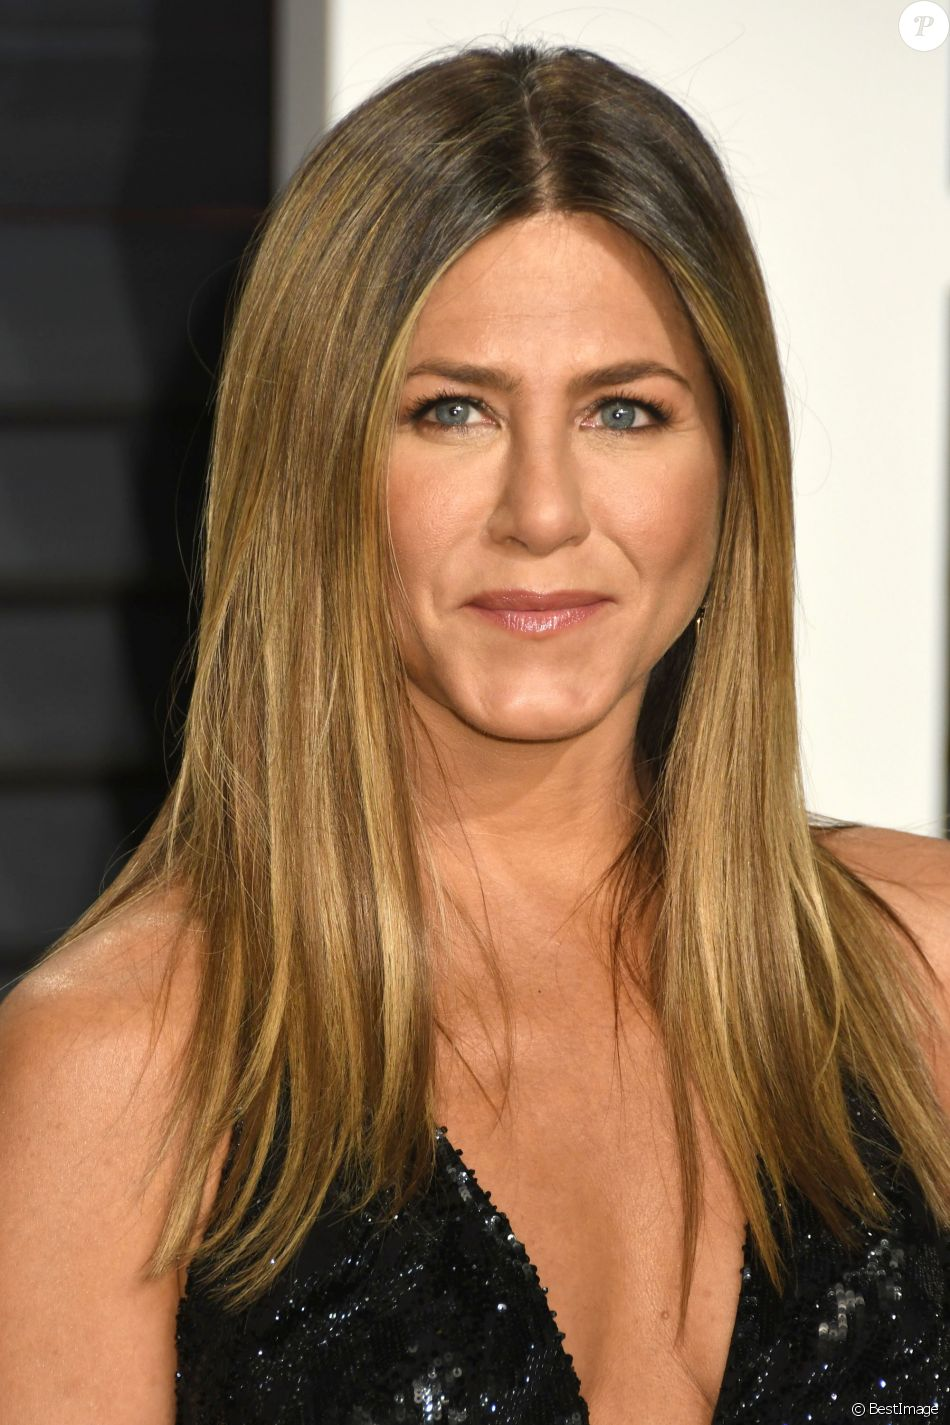 Jennifer Aniston lors de la Vanity Fair Oscar viewing party 2017 au Wallis Annenberg Center for the Performing Arts à Beverly Hills, le 26 février 2017.